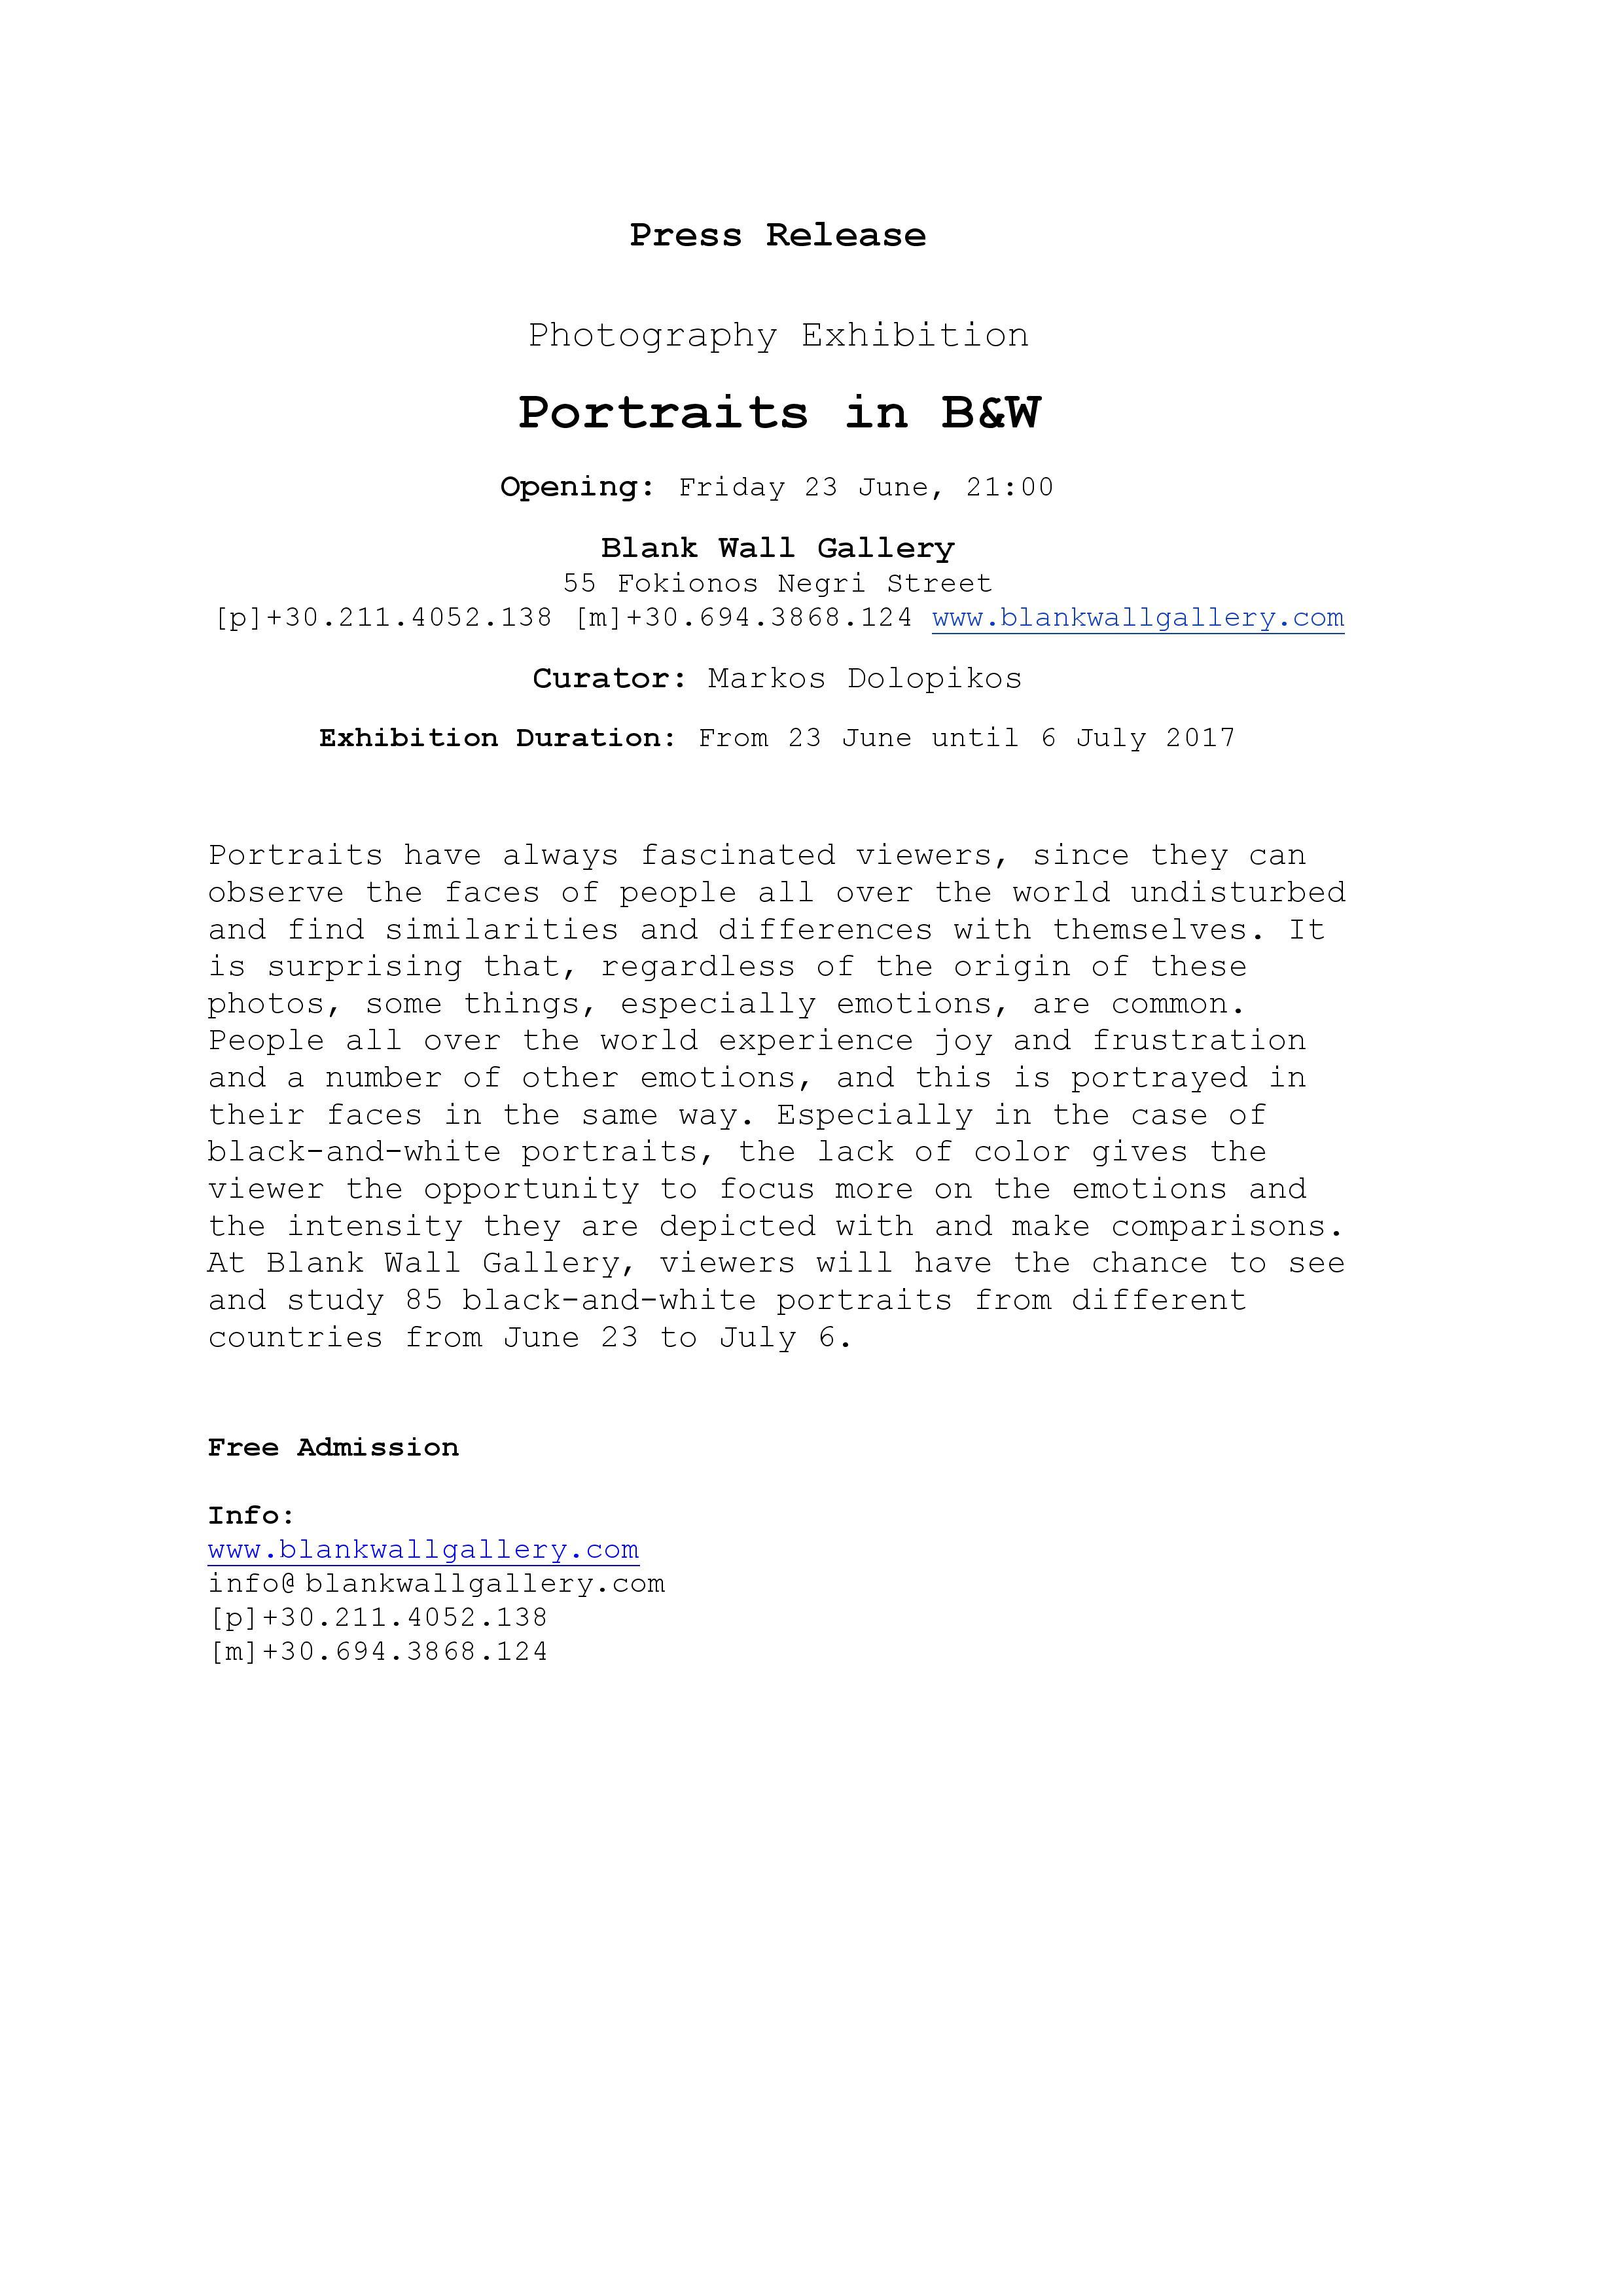 Press Release - ENG-page-001.jpg